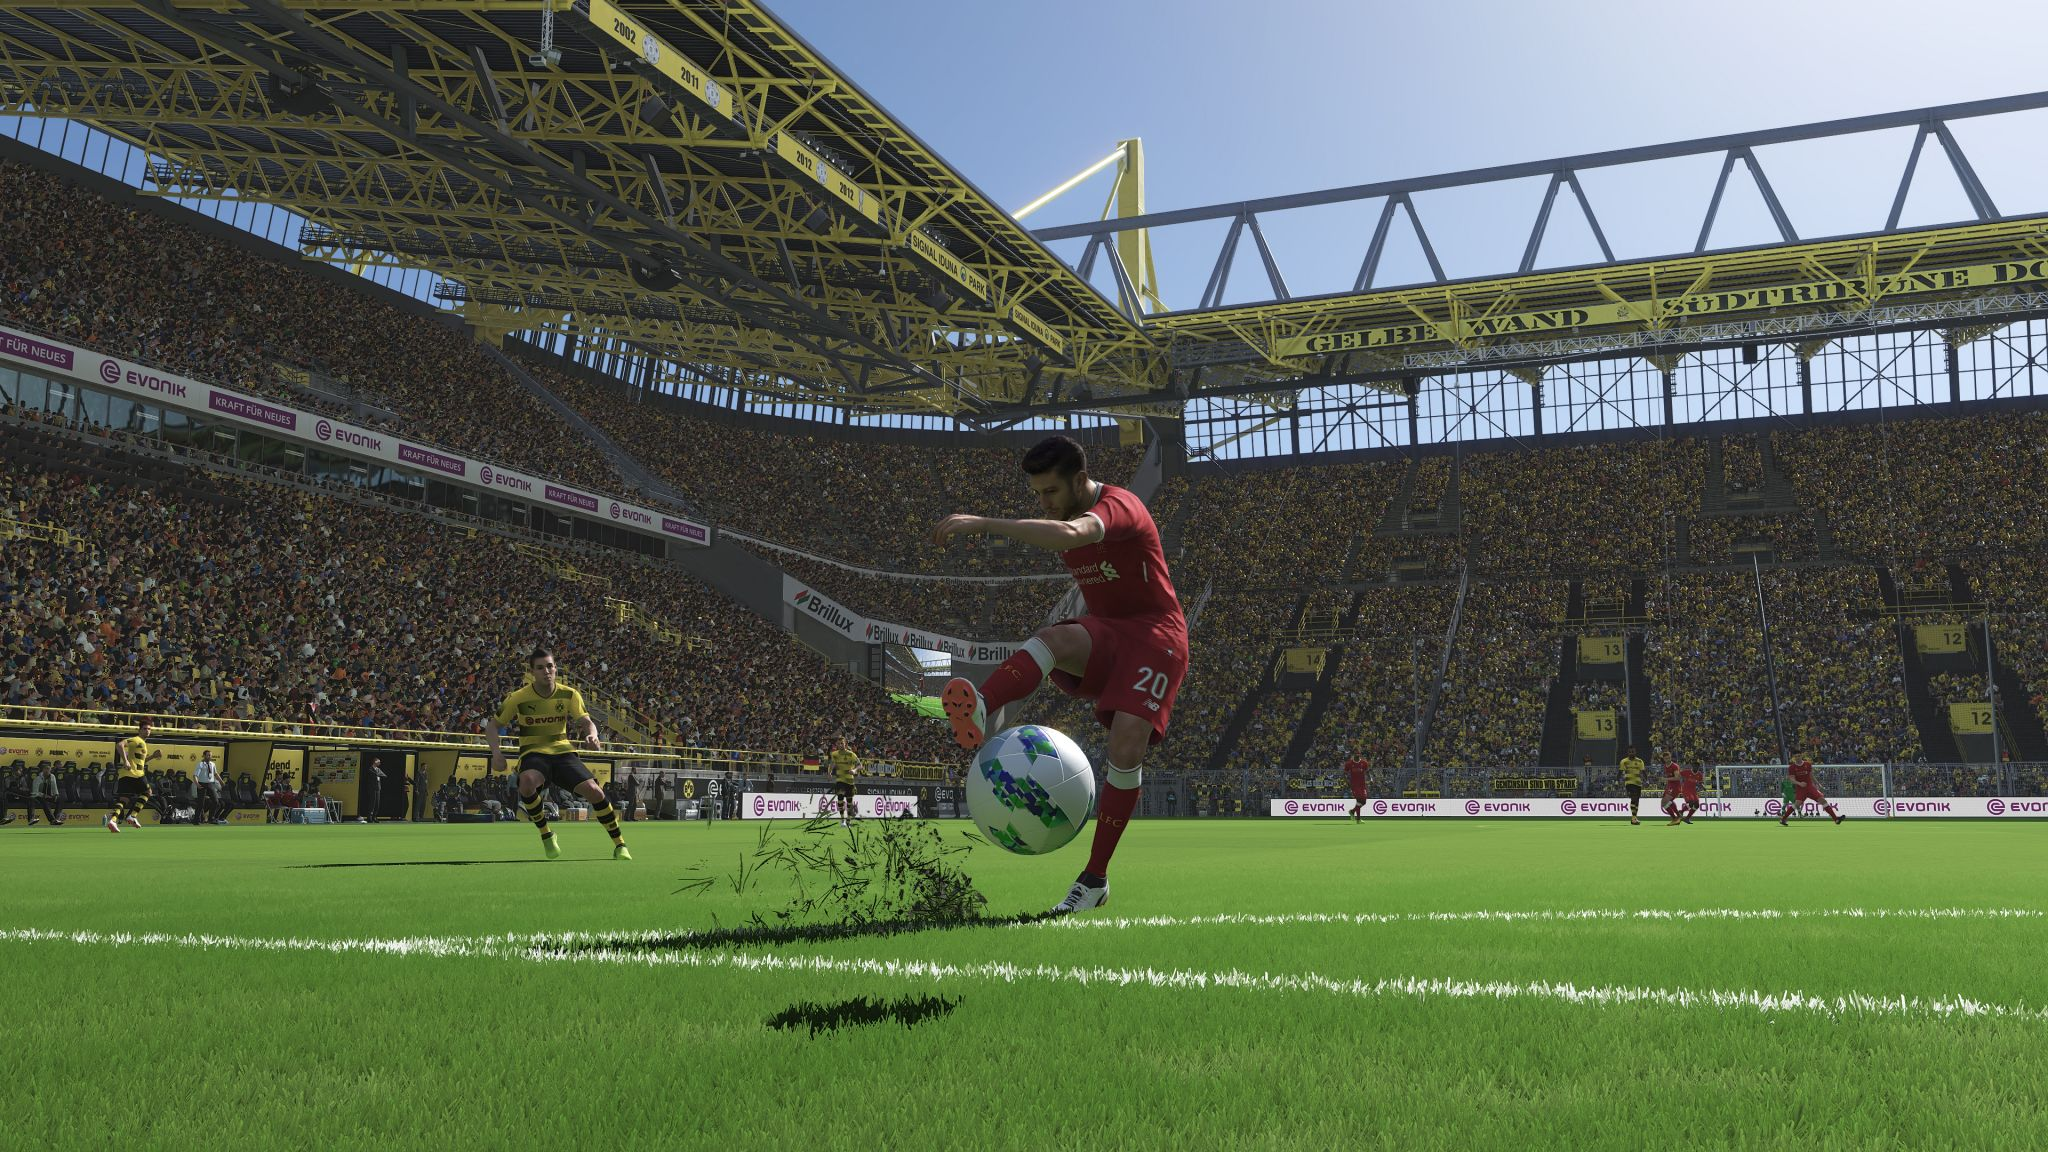 PES 2018 s 4K trailer screenshots and PC specs 2048x1152